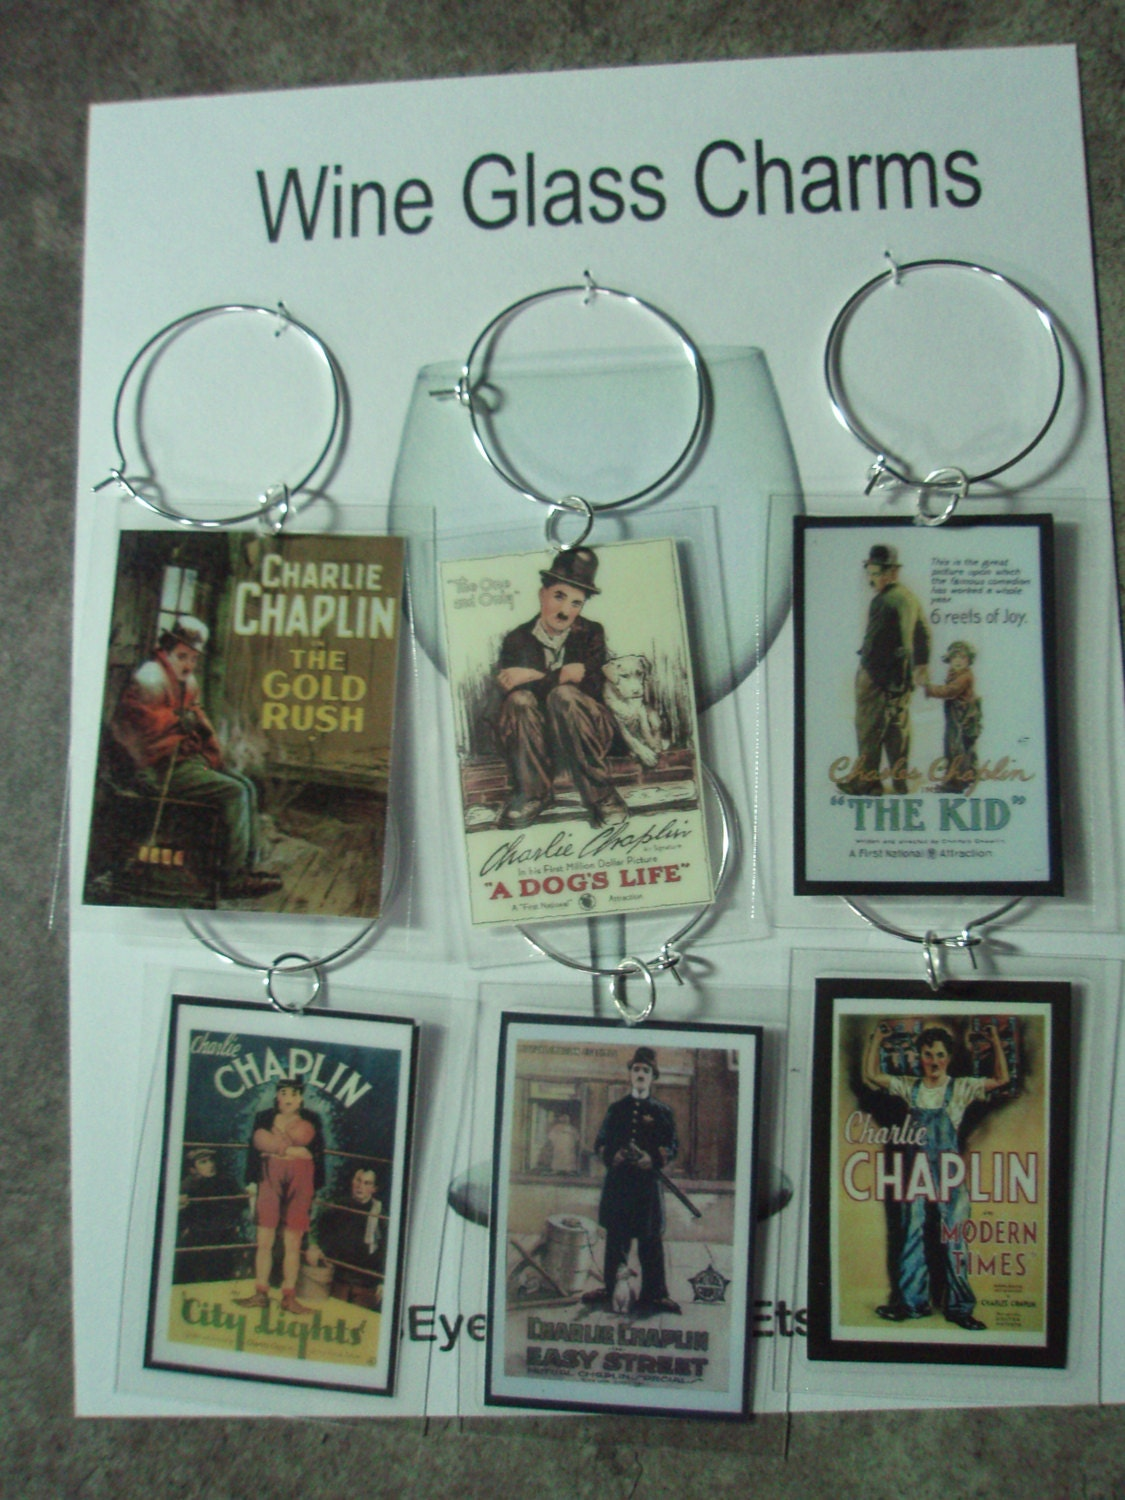 wine glass charms vintage movie posters set 6 tags all Charlie